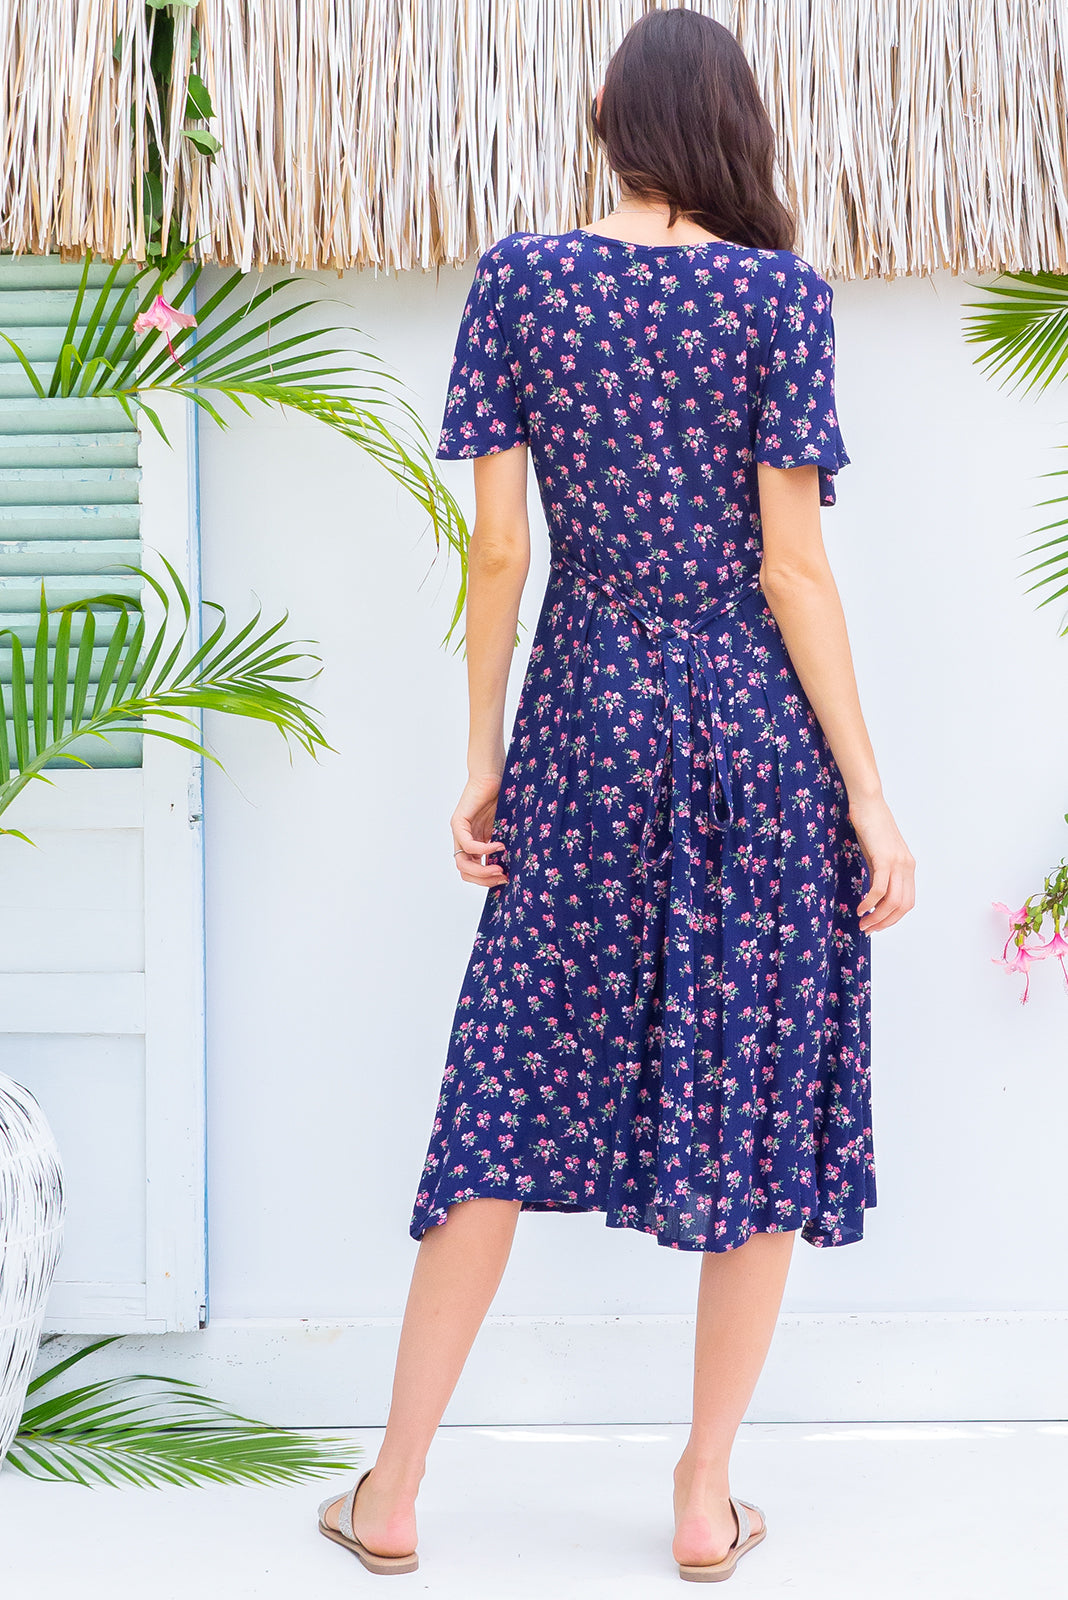 Faithful Ditzy Navy Midi dress features a button front, soft petal sleeve and deep side pockets it is made in a crinkled woven rayon and comes in a bright navy ditzy floral print